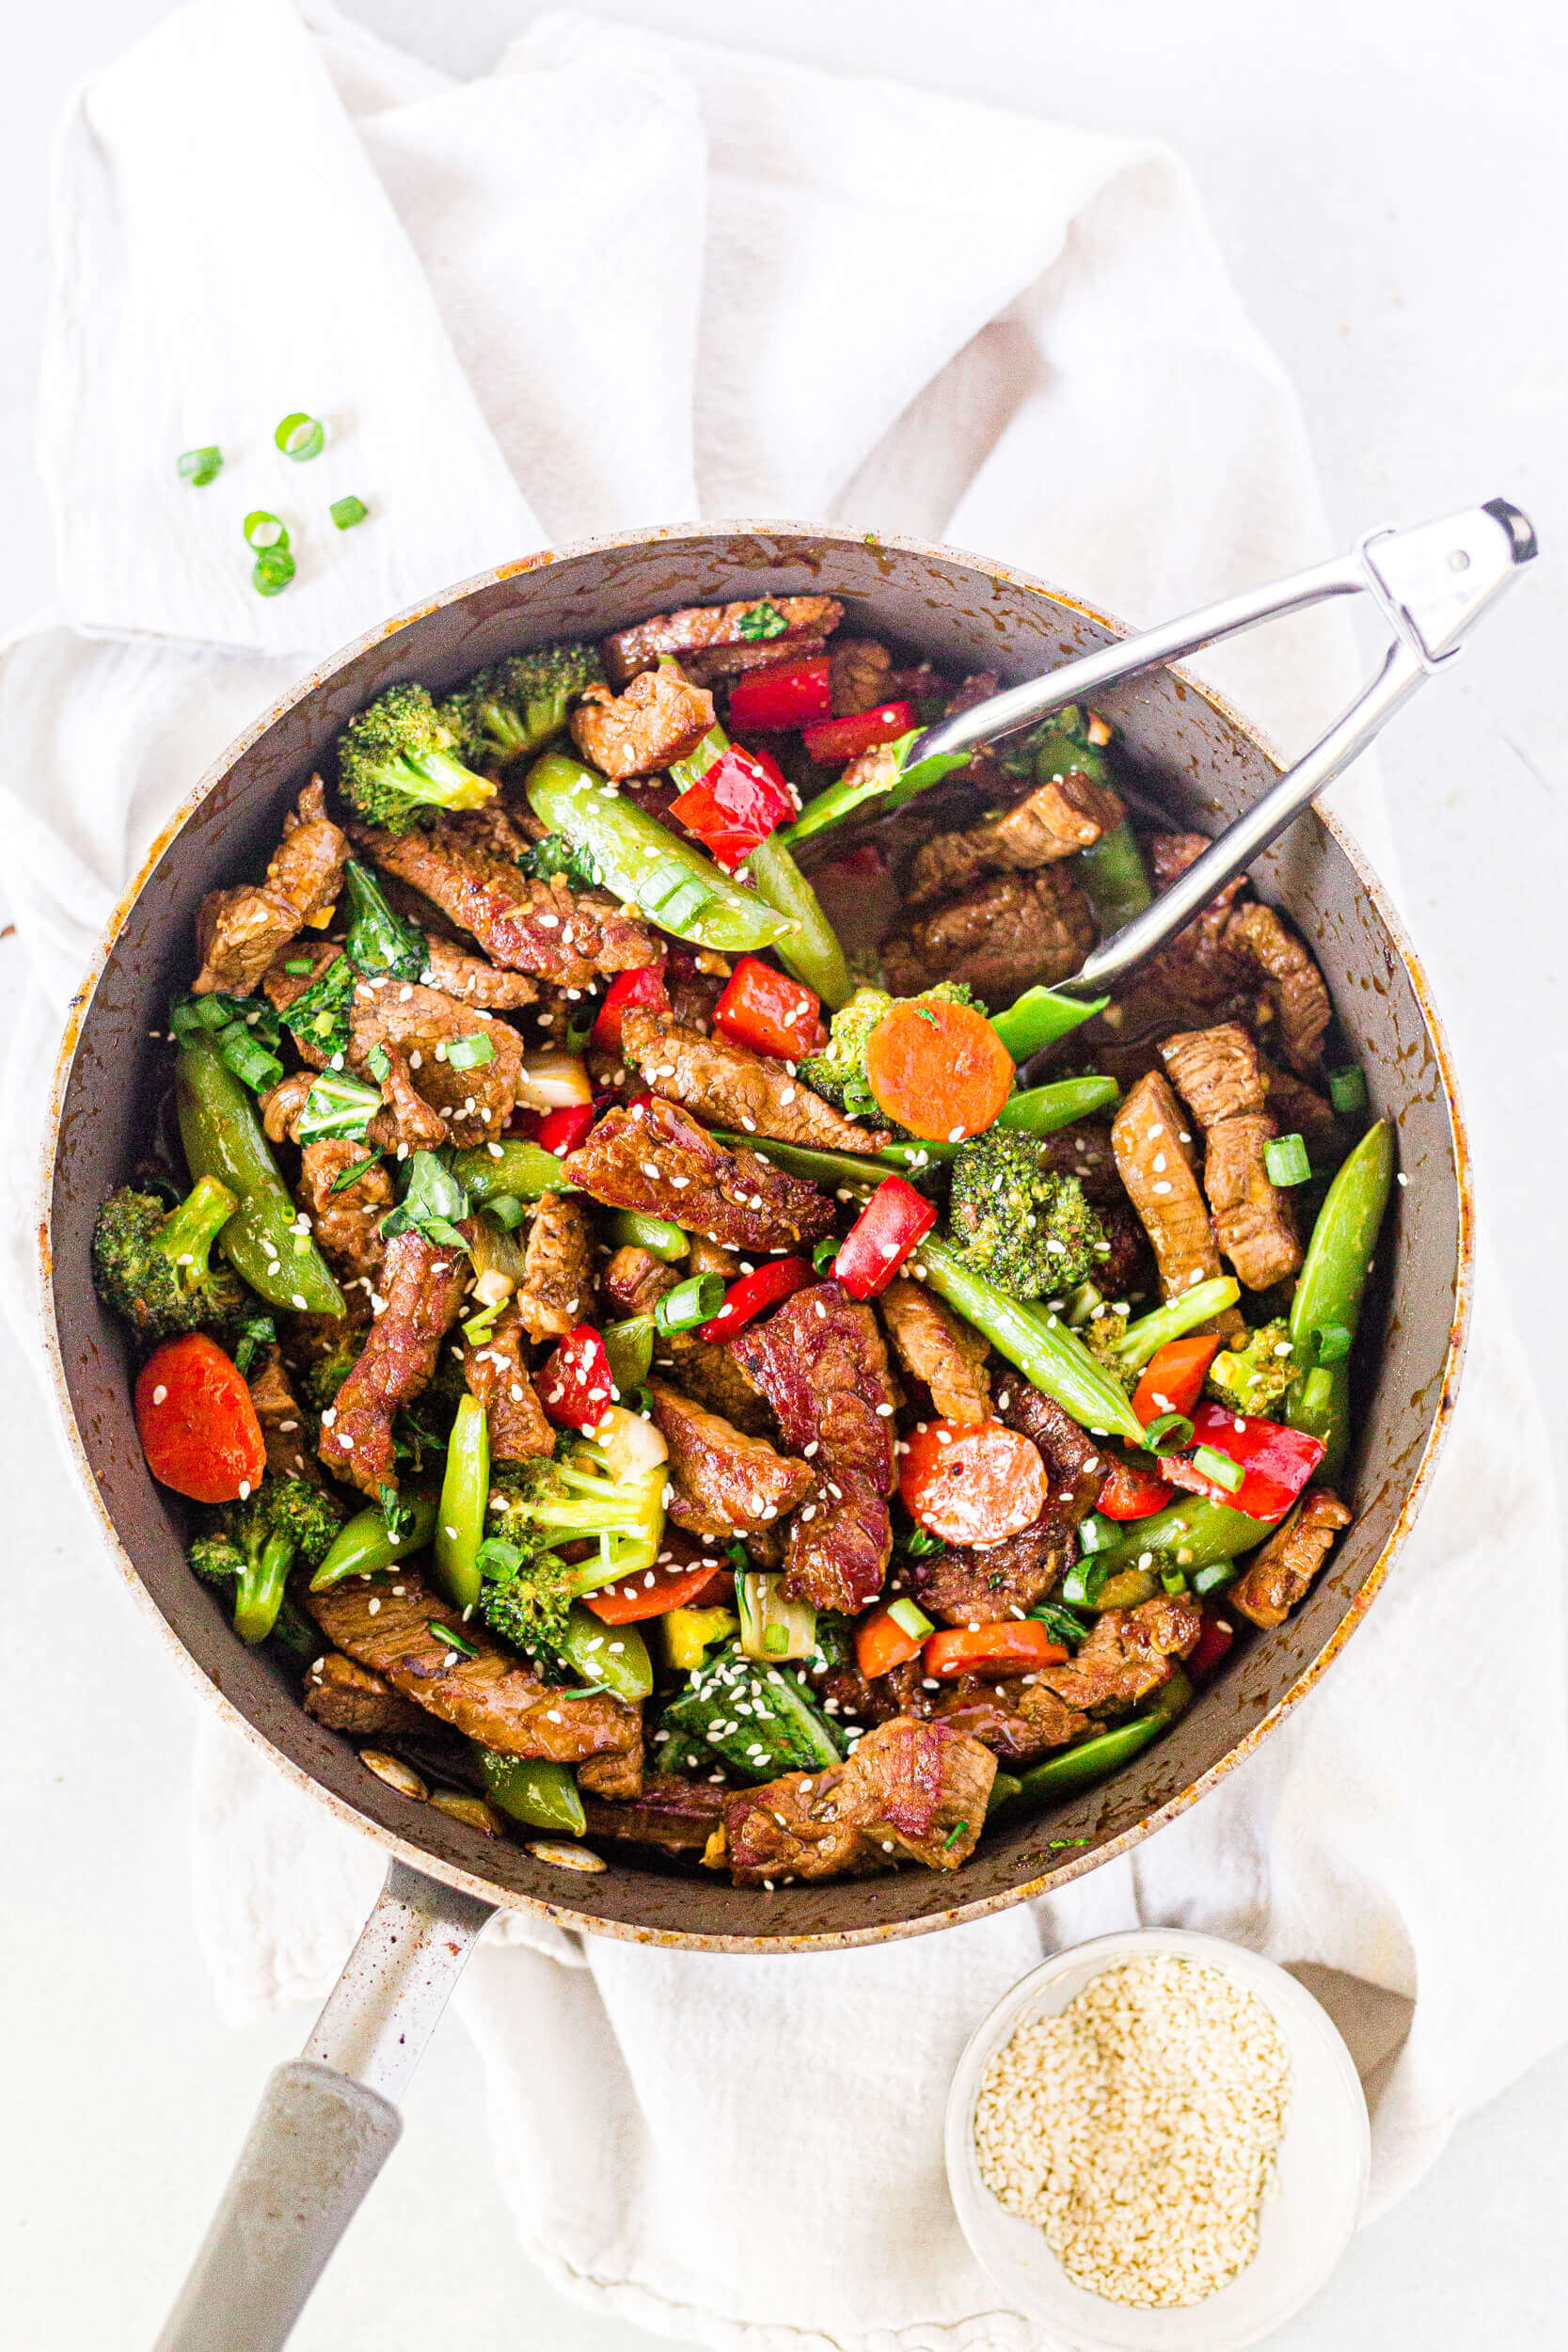 veggie packed steak stir fry in a frying pan with tongs and sesame seeds